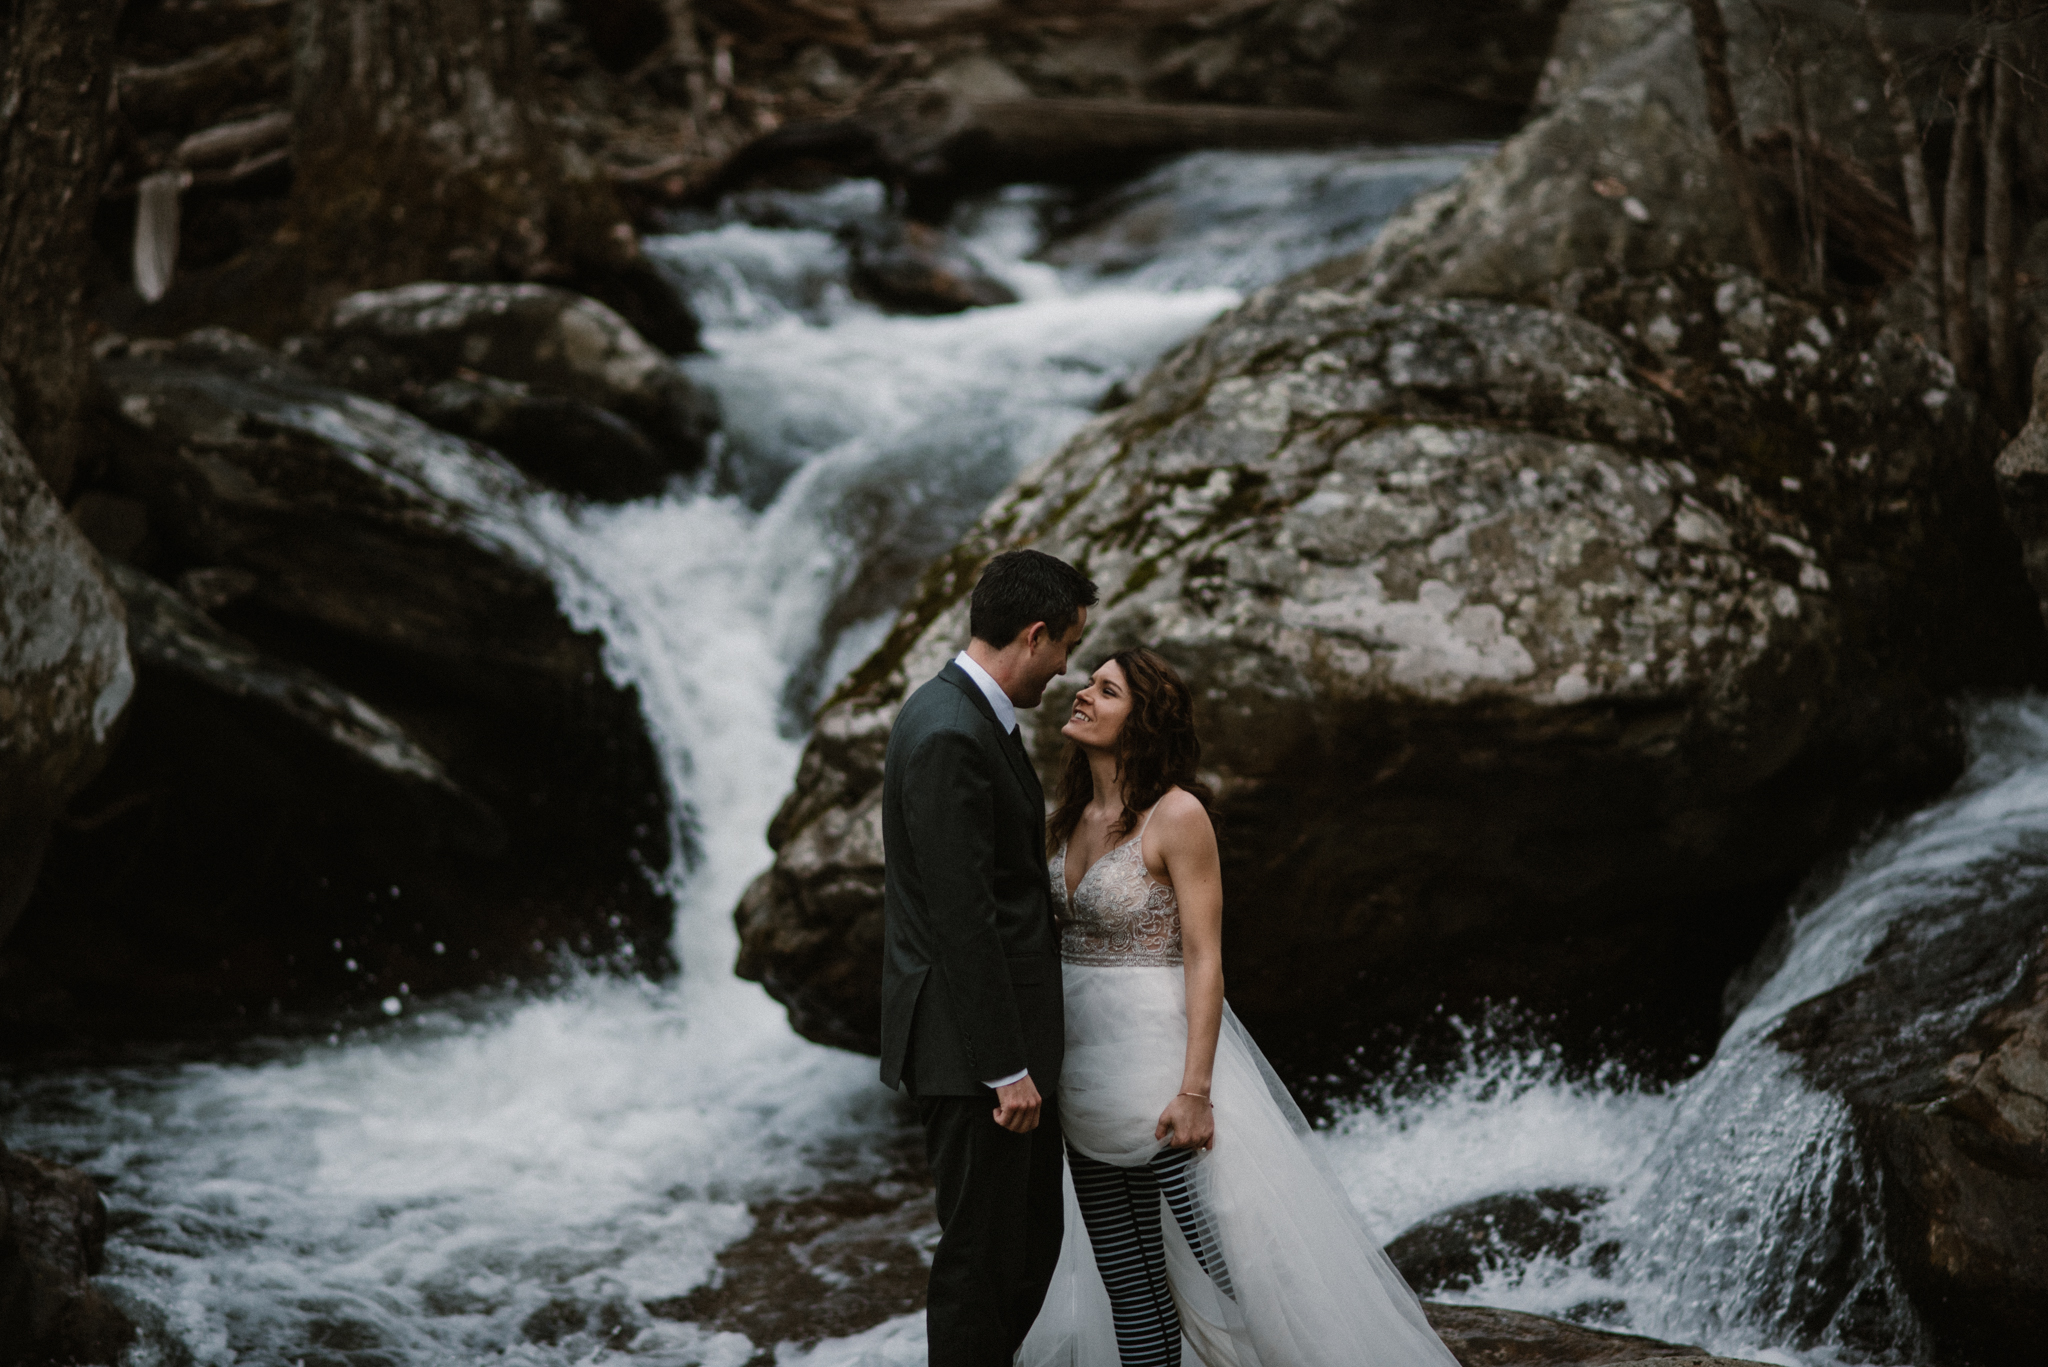 Stephanie and Steve - Shenandoah National Park Elopement - Sunrise Hiking Elopement - Adventurous Elopement - Virginia Elopement Photographer - Shenandoah national Park Wedding Photographer - White Sails Creative_8.jpg